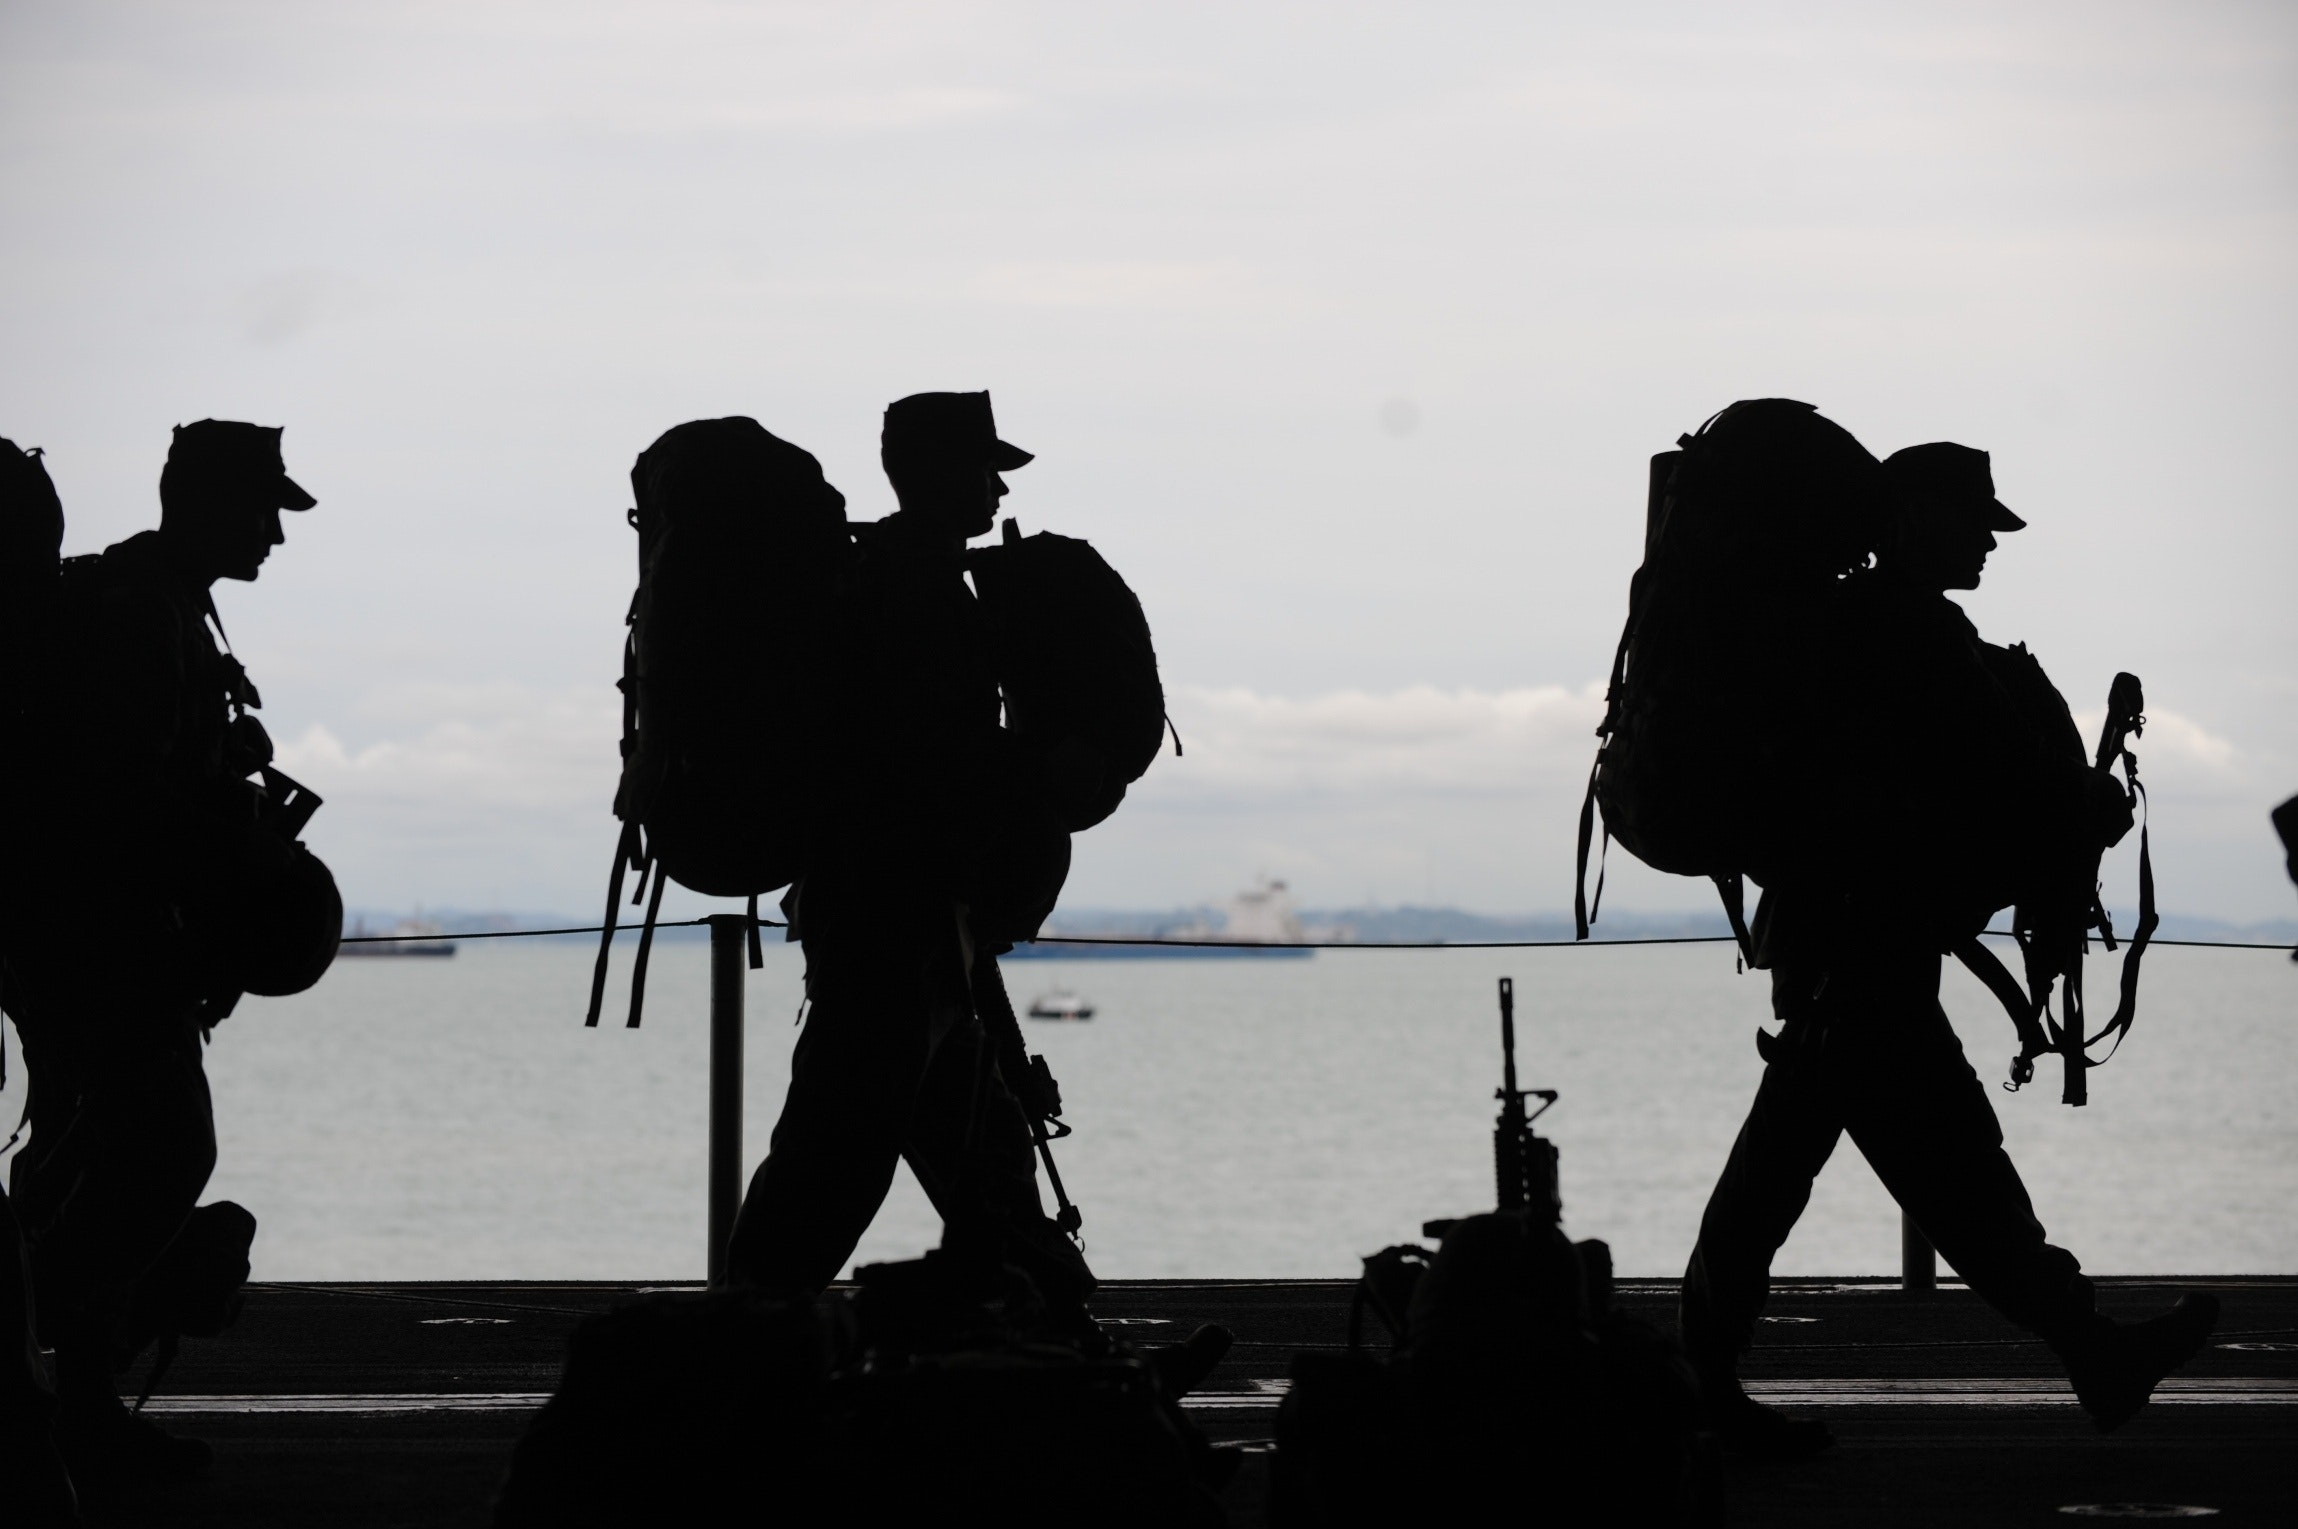 Three armed service members in shadow, carrying heavy equipment across a ship with an ocean and other ships in the background, symbolic of moral injury and women veterans.